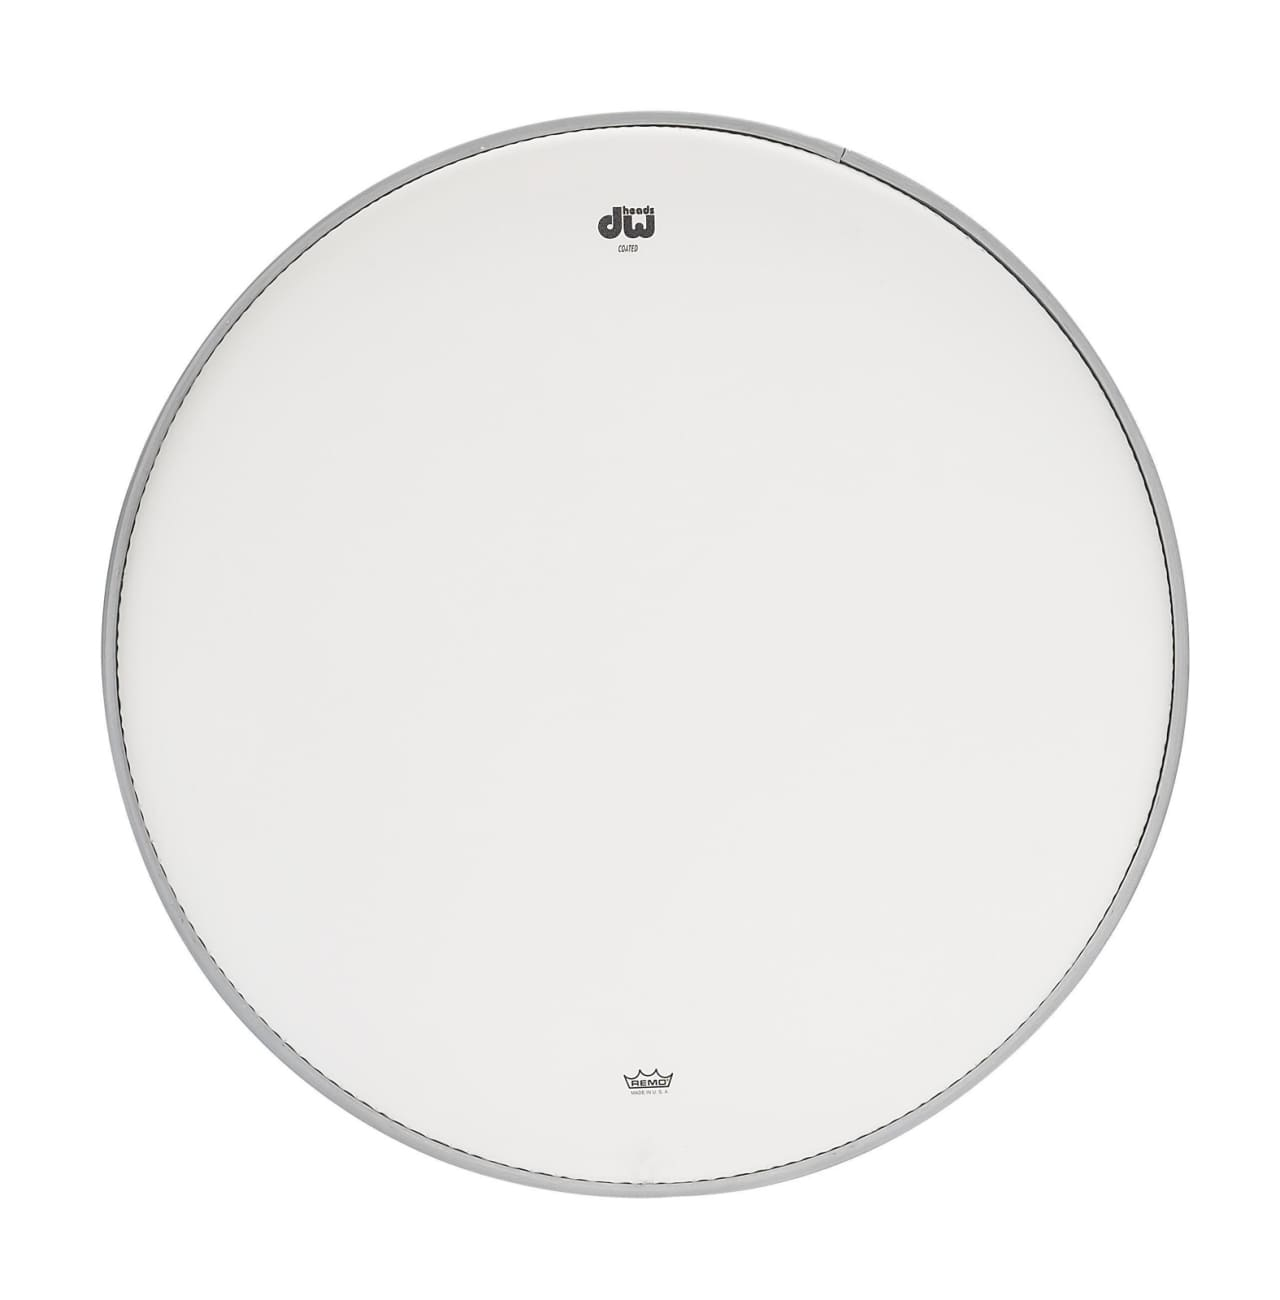 dw drum heads 14in coated drum head w tuning sequence reverb. Black Bedroom Furniture Sets. Home Design Ideas